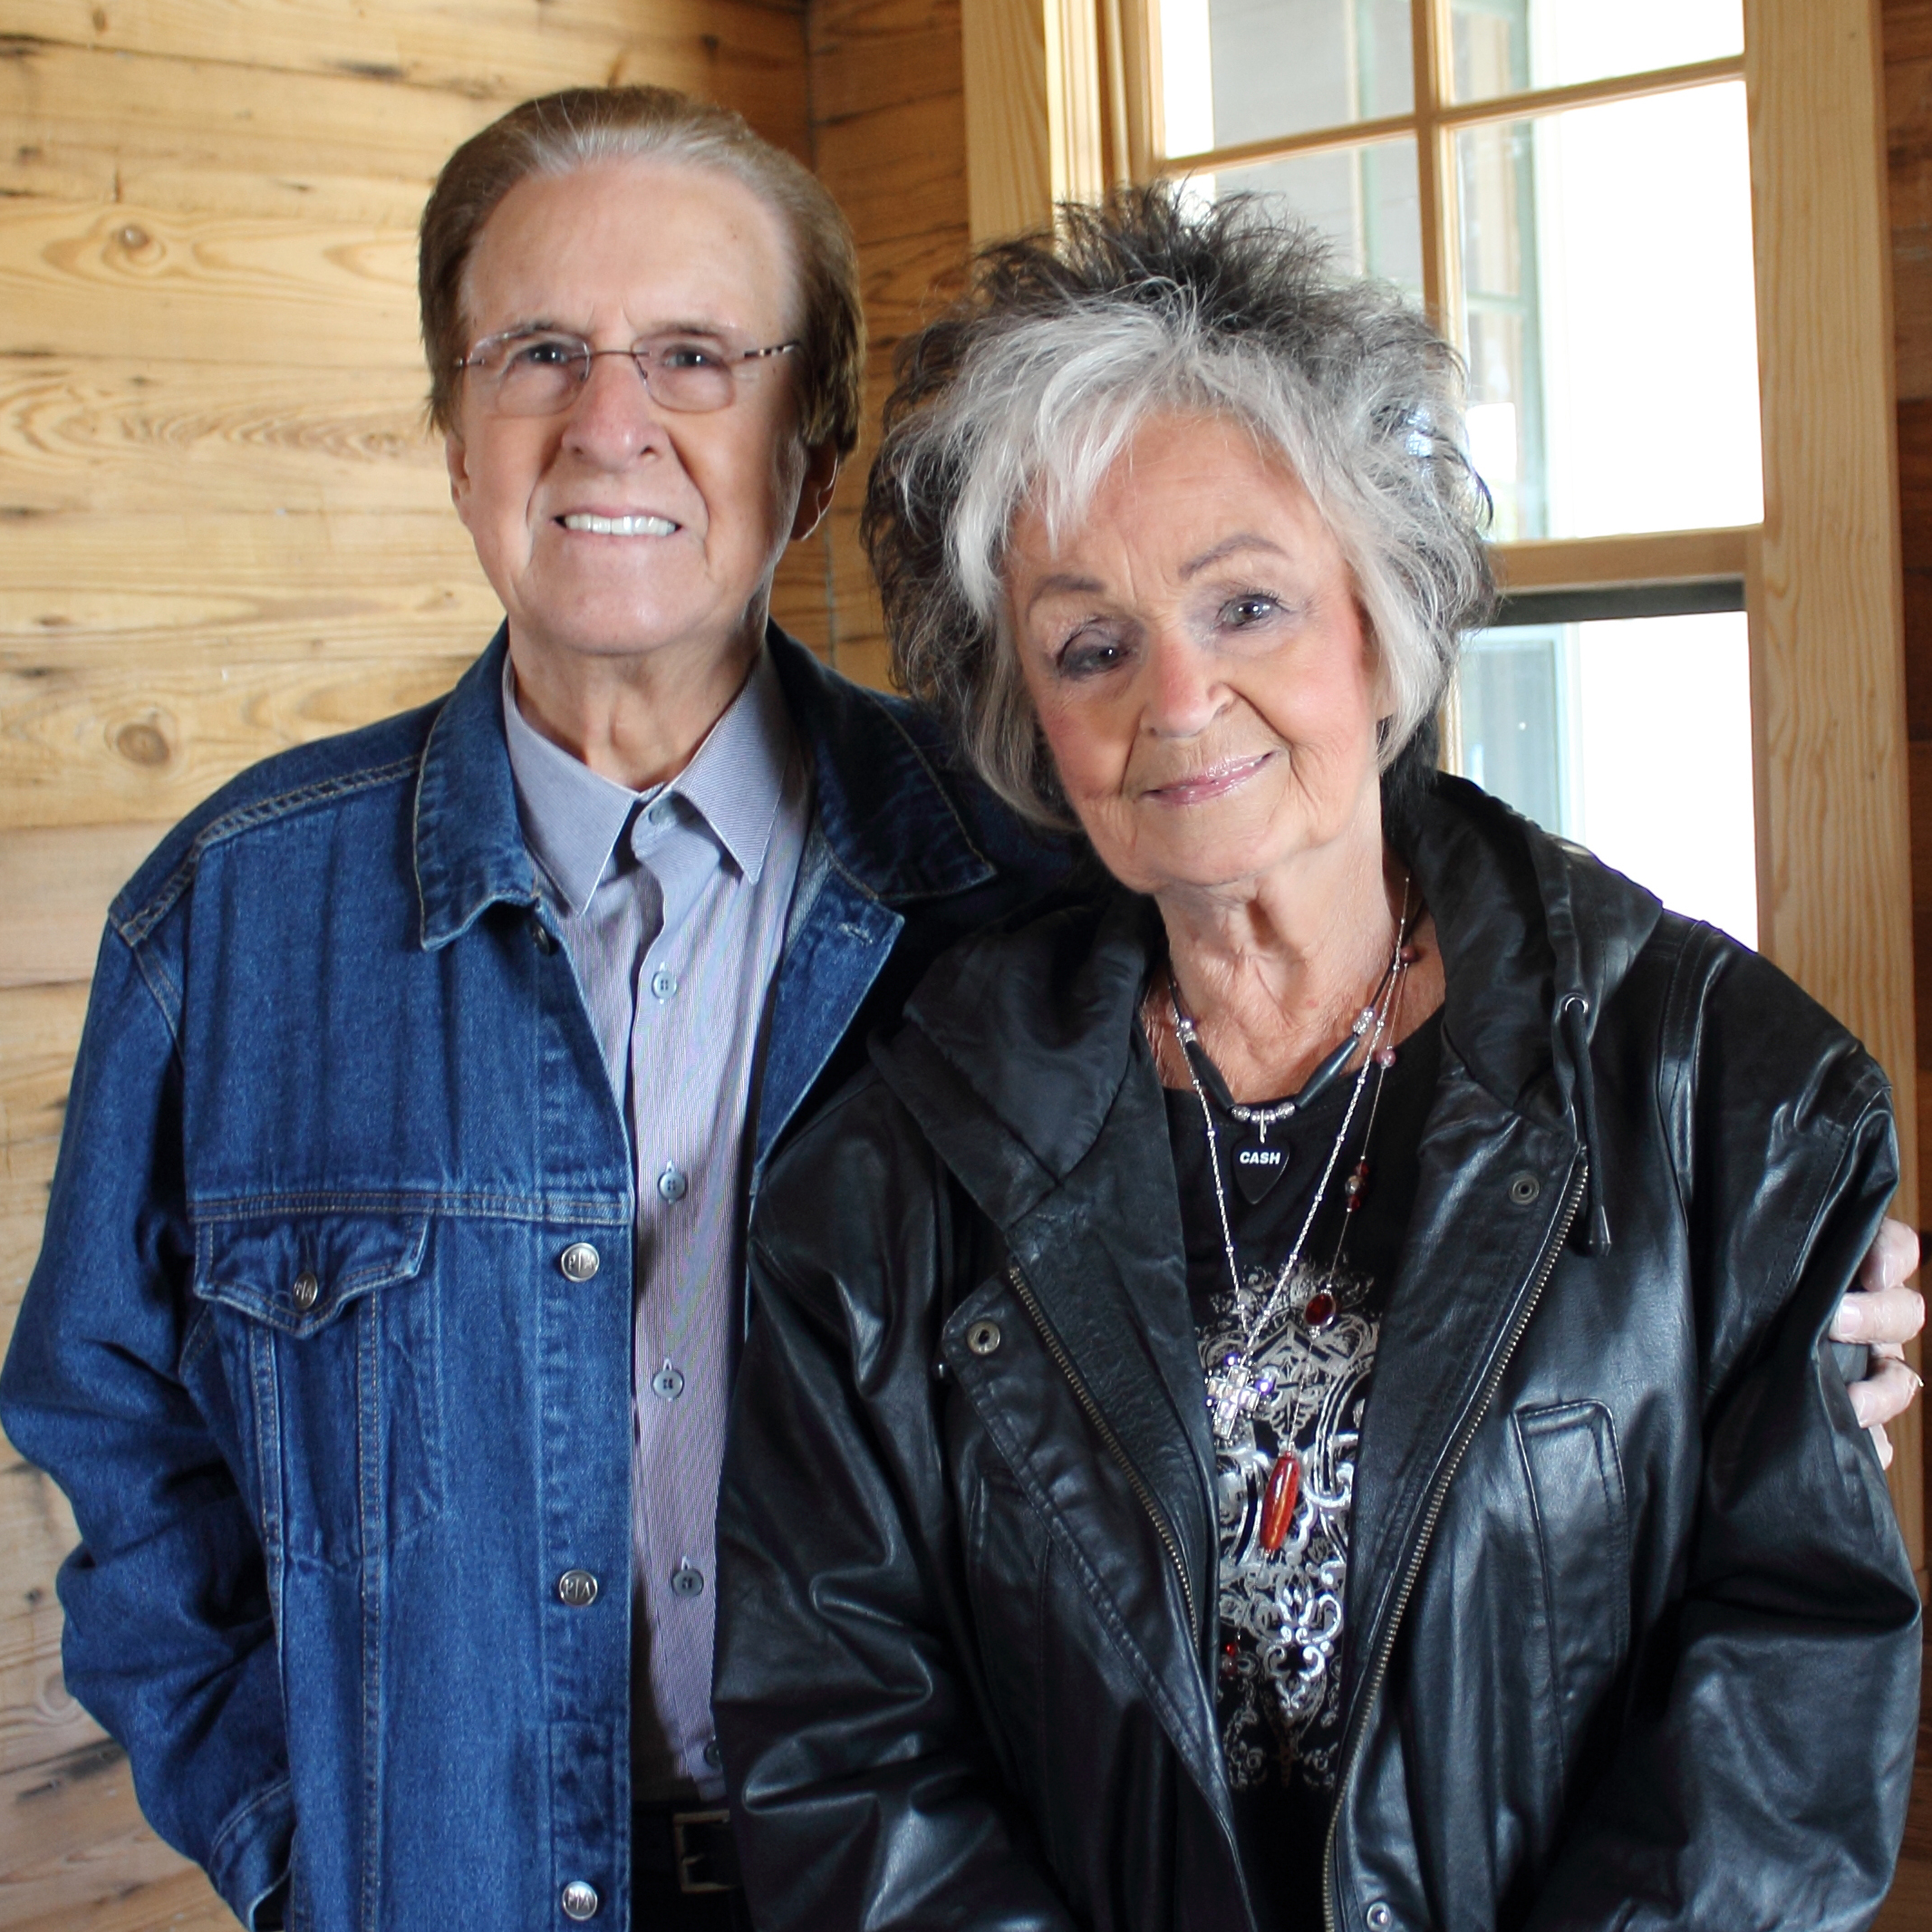 Johnny Cash's brother Tommy Cash and sister Joanne Cash Yates have drawn on their own memories to assist in the authentic restoration of the house where they grew up.